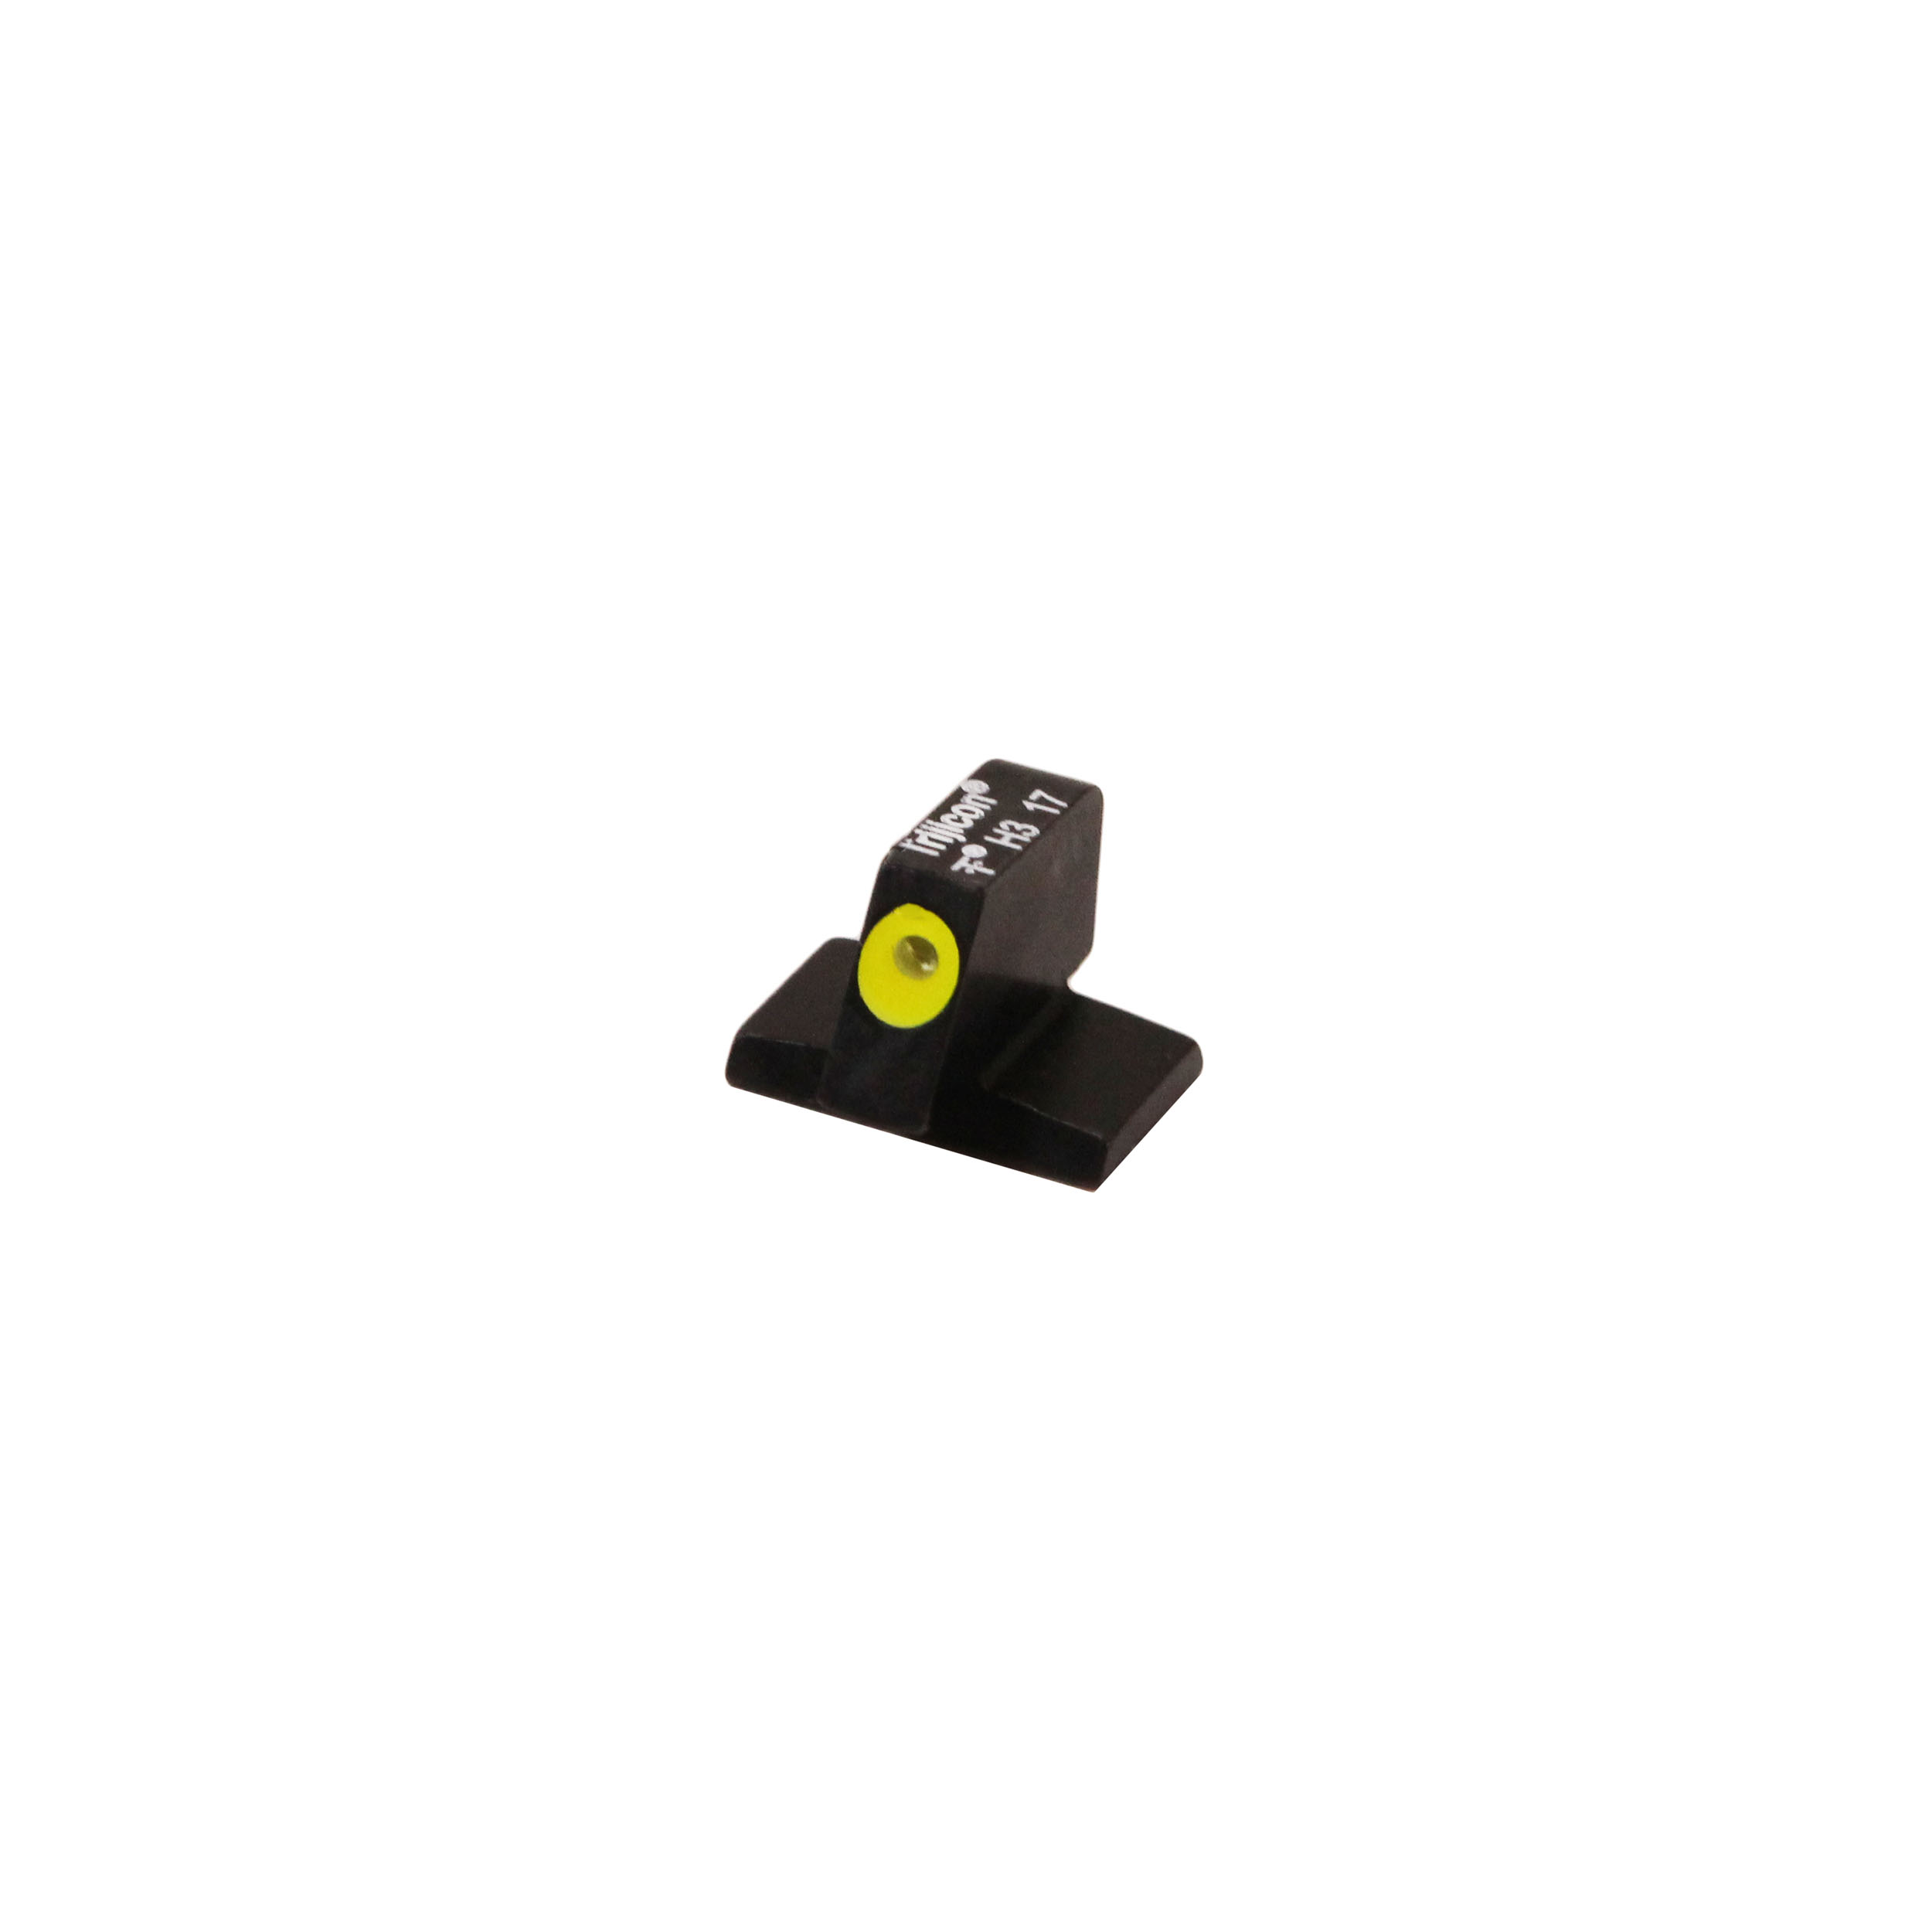 Trijicon HD XR Front Sight FNH FNS-9, FNX-9, and FNP-9. Yellow Front Outline Lamp by Trijicon